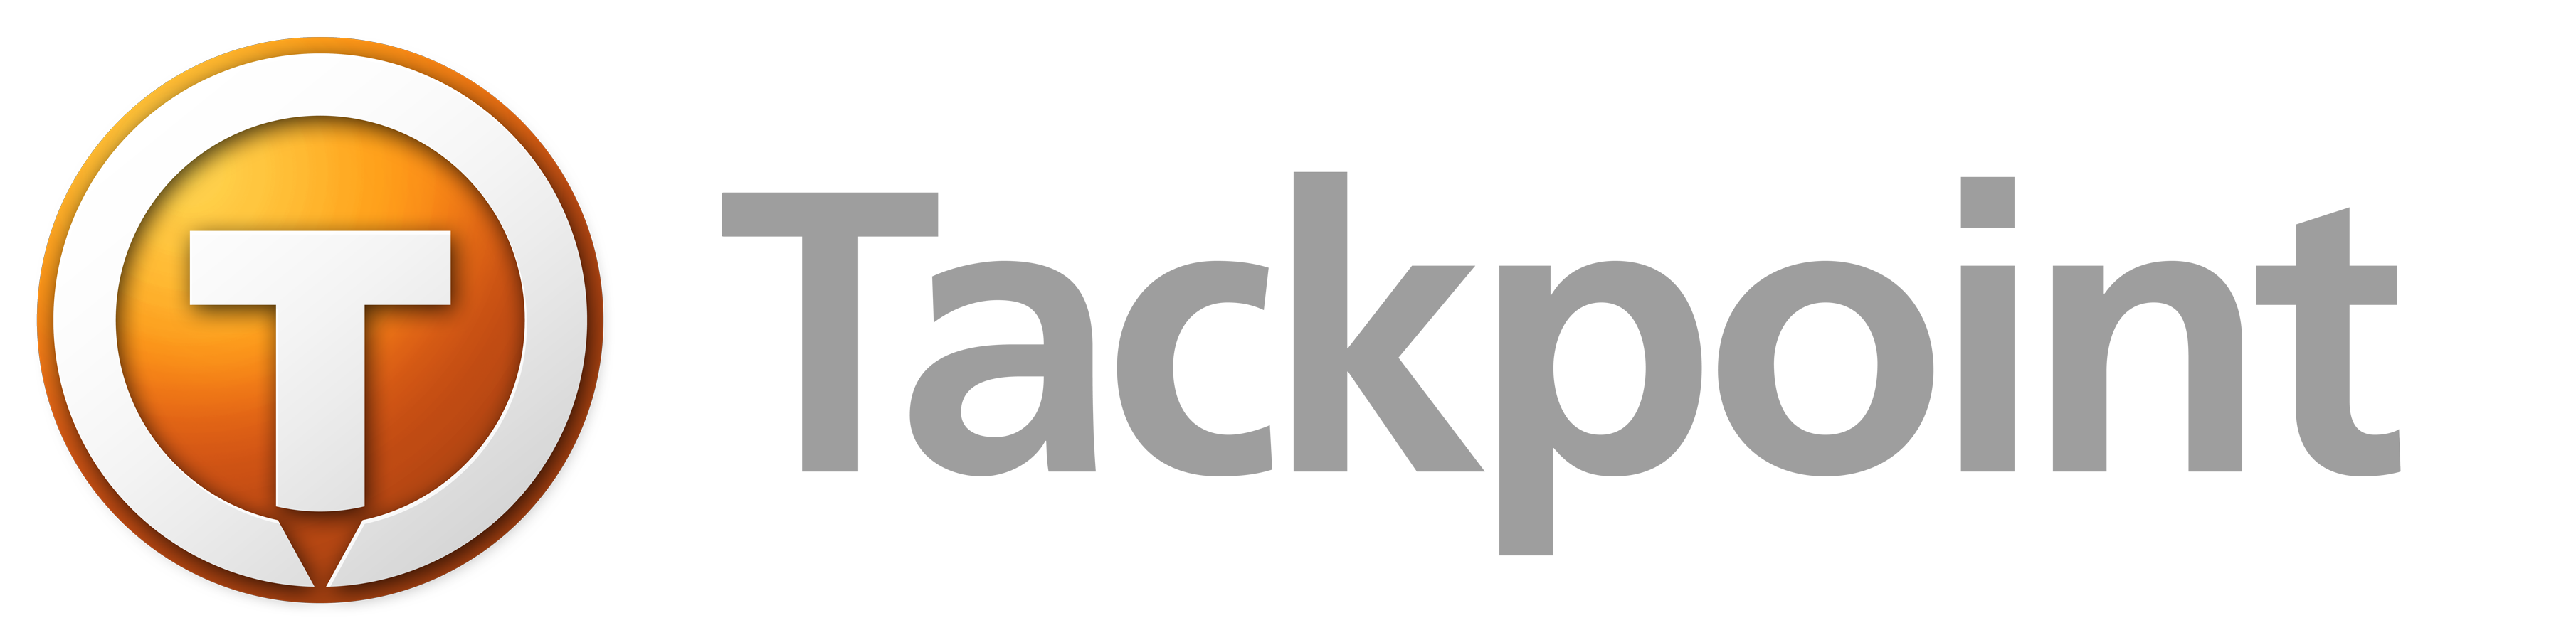 Tackpoint